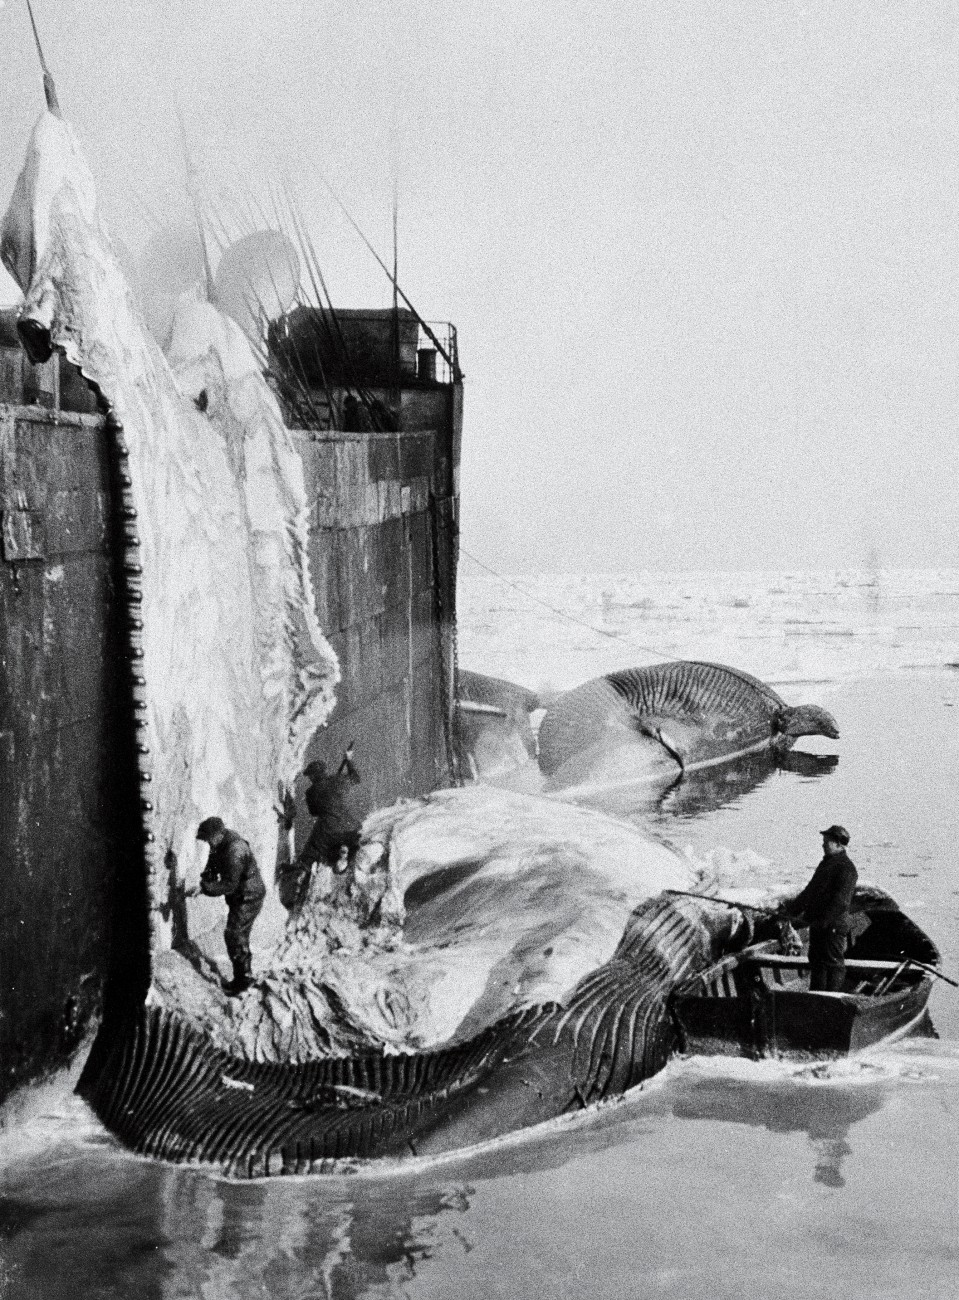 Aboard the Norwegian factory ship Sir James Clark Ross, which operated in the Ross Sea, Antarctica, each summer from 1923 to 1930, there was no slipway up which to drag whales, so they were flensed alongside, the blubber being torn off by winches.